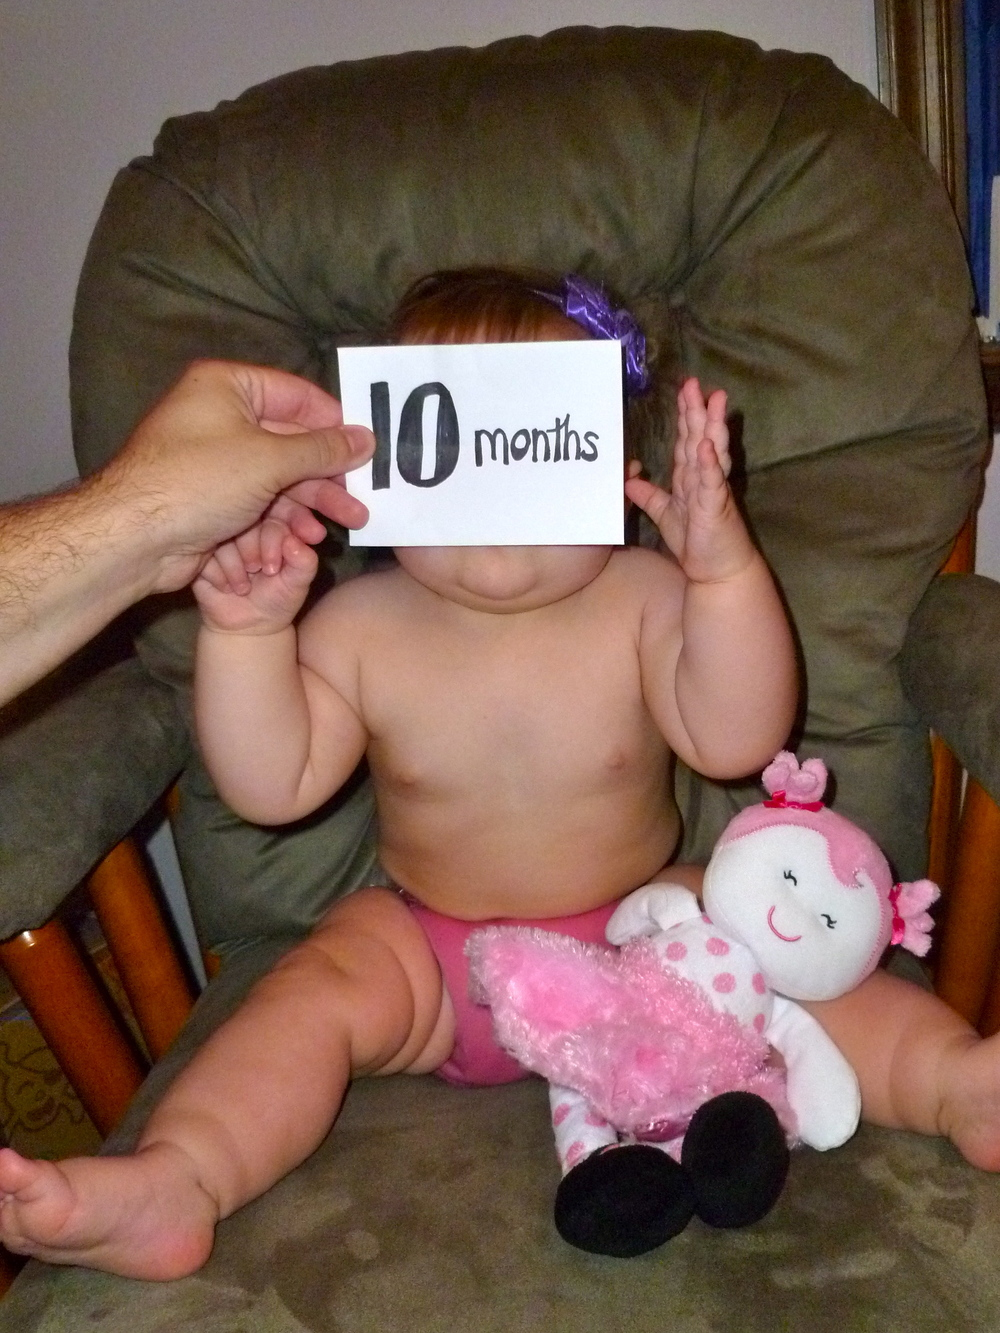 10 month chair photo